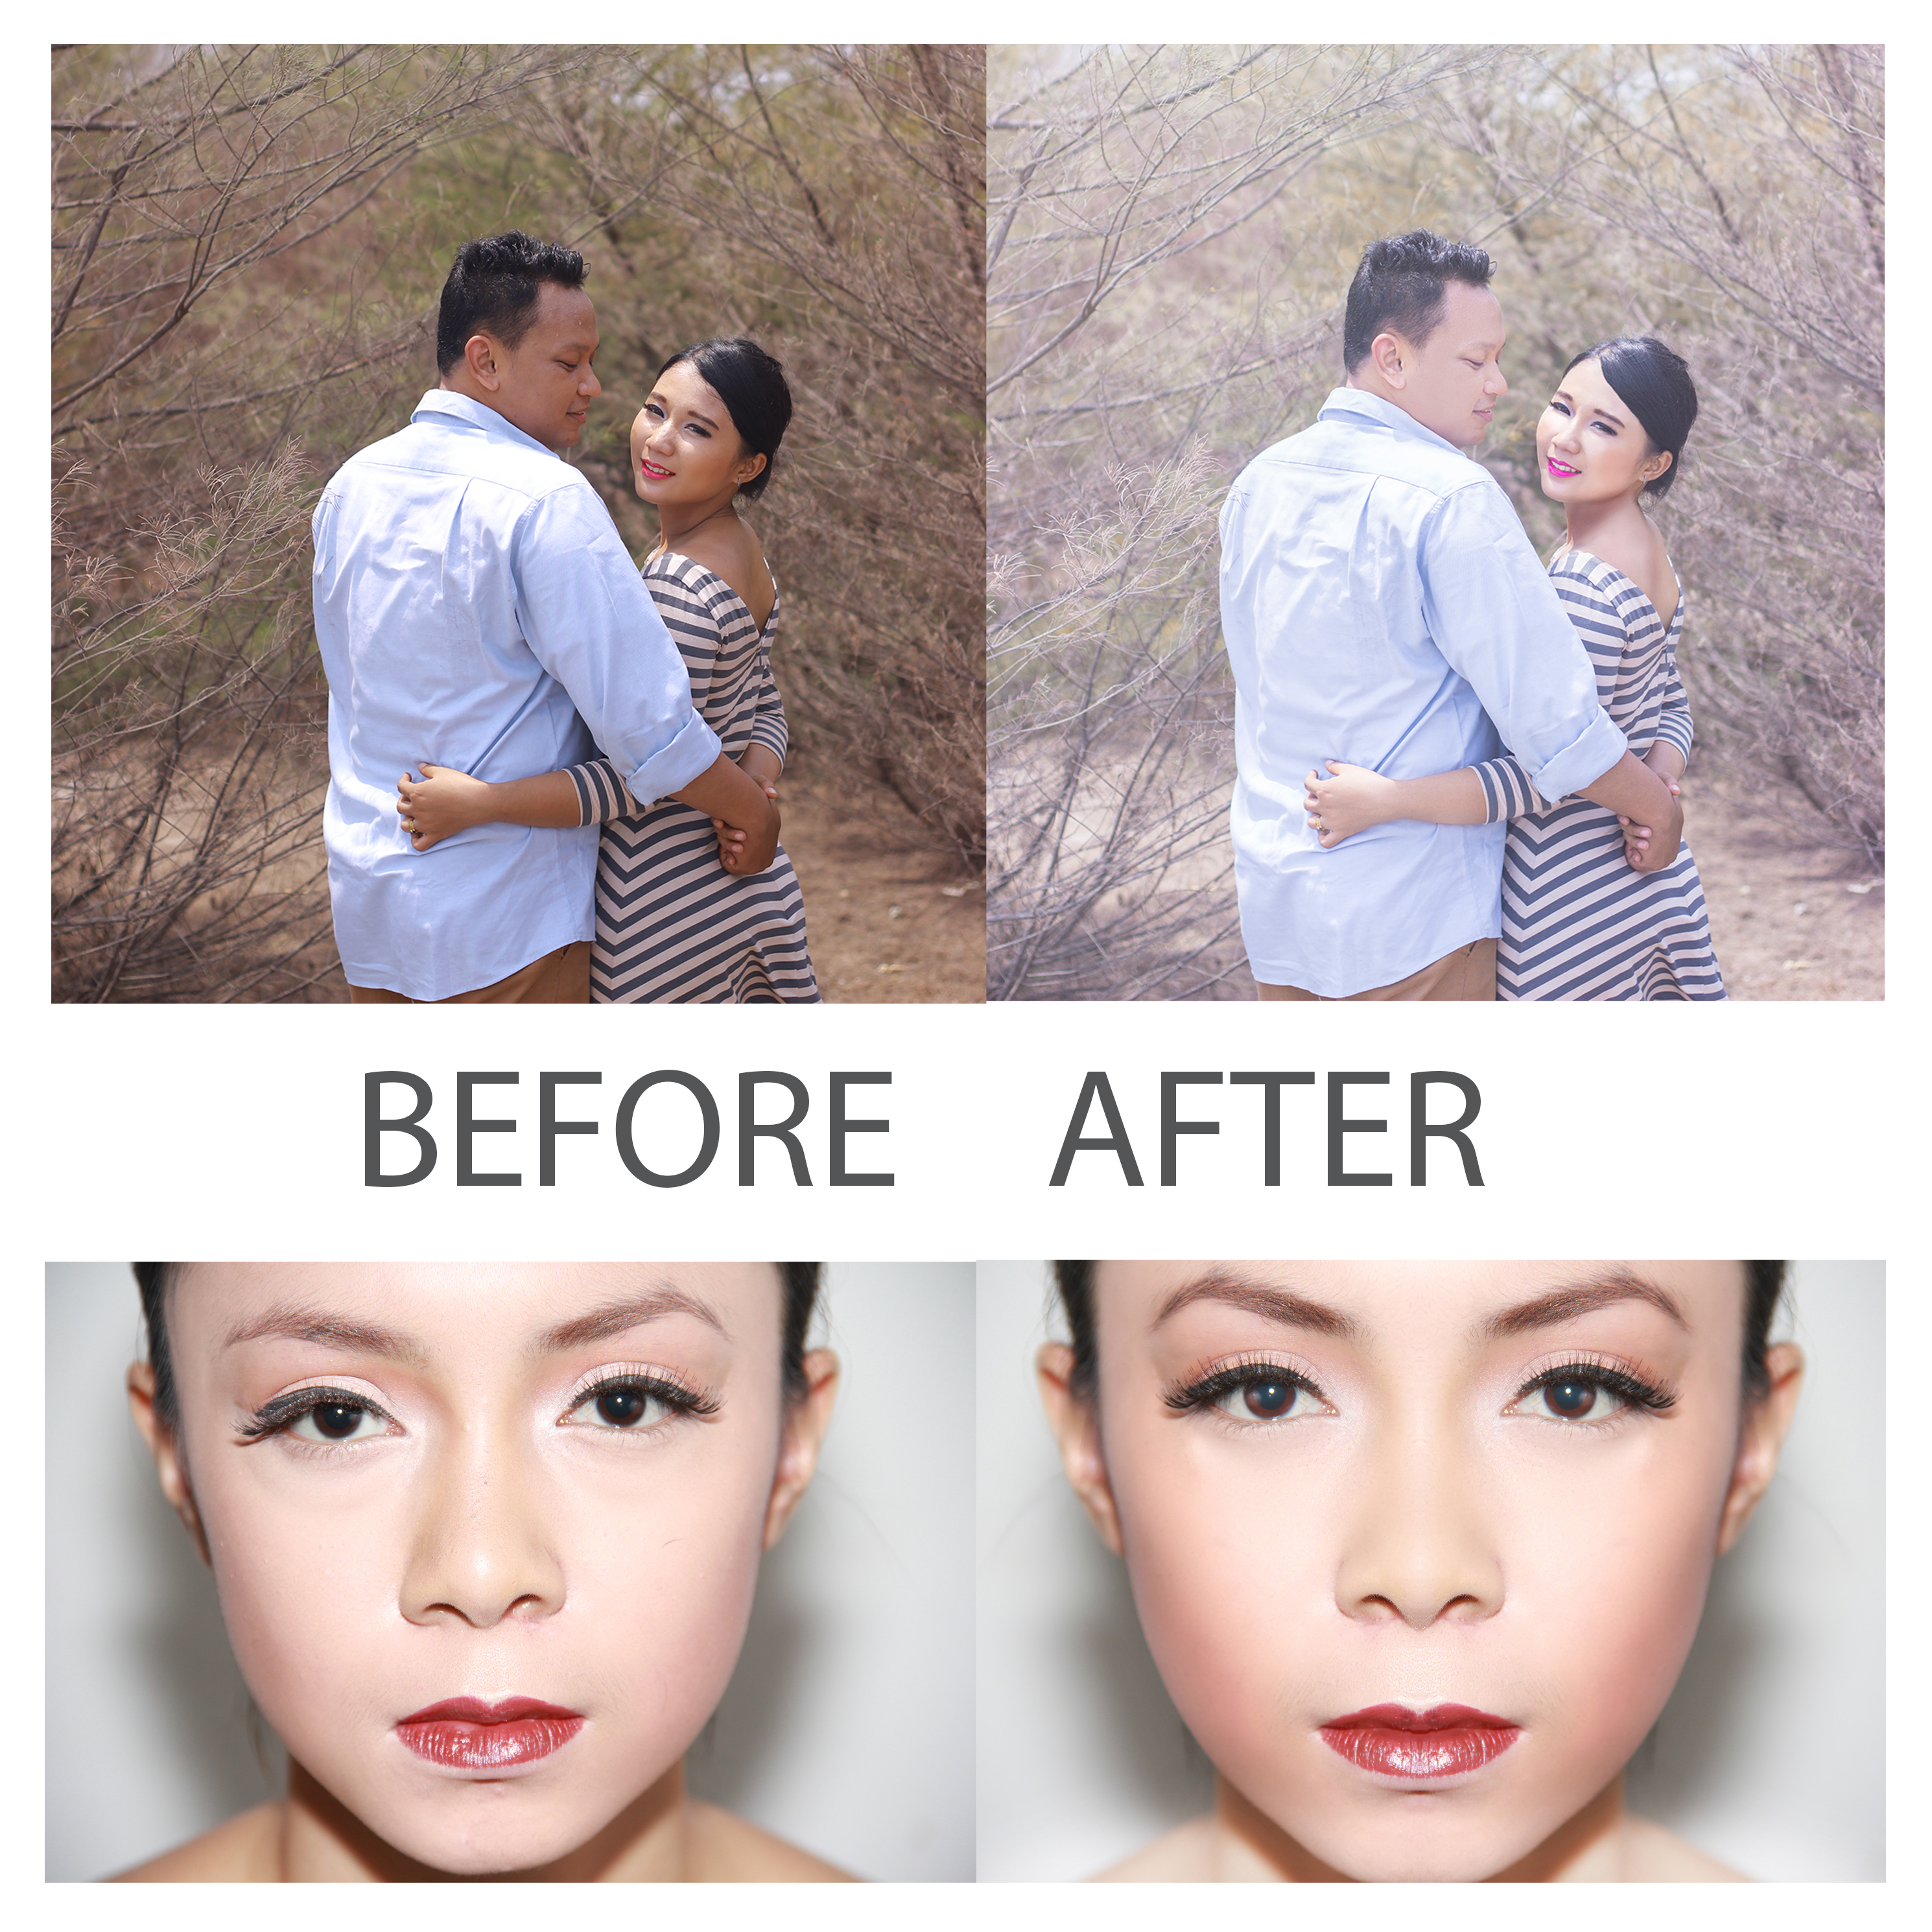 TOUCH UP YOUR PHOTO